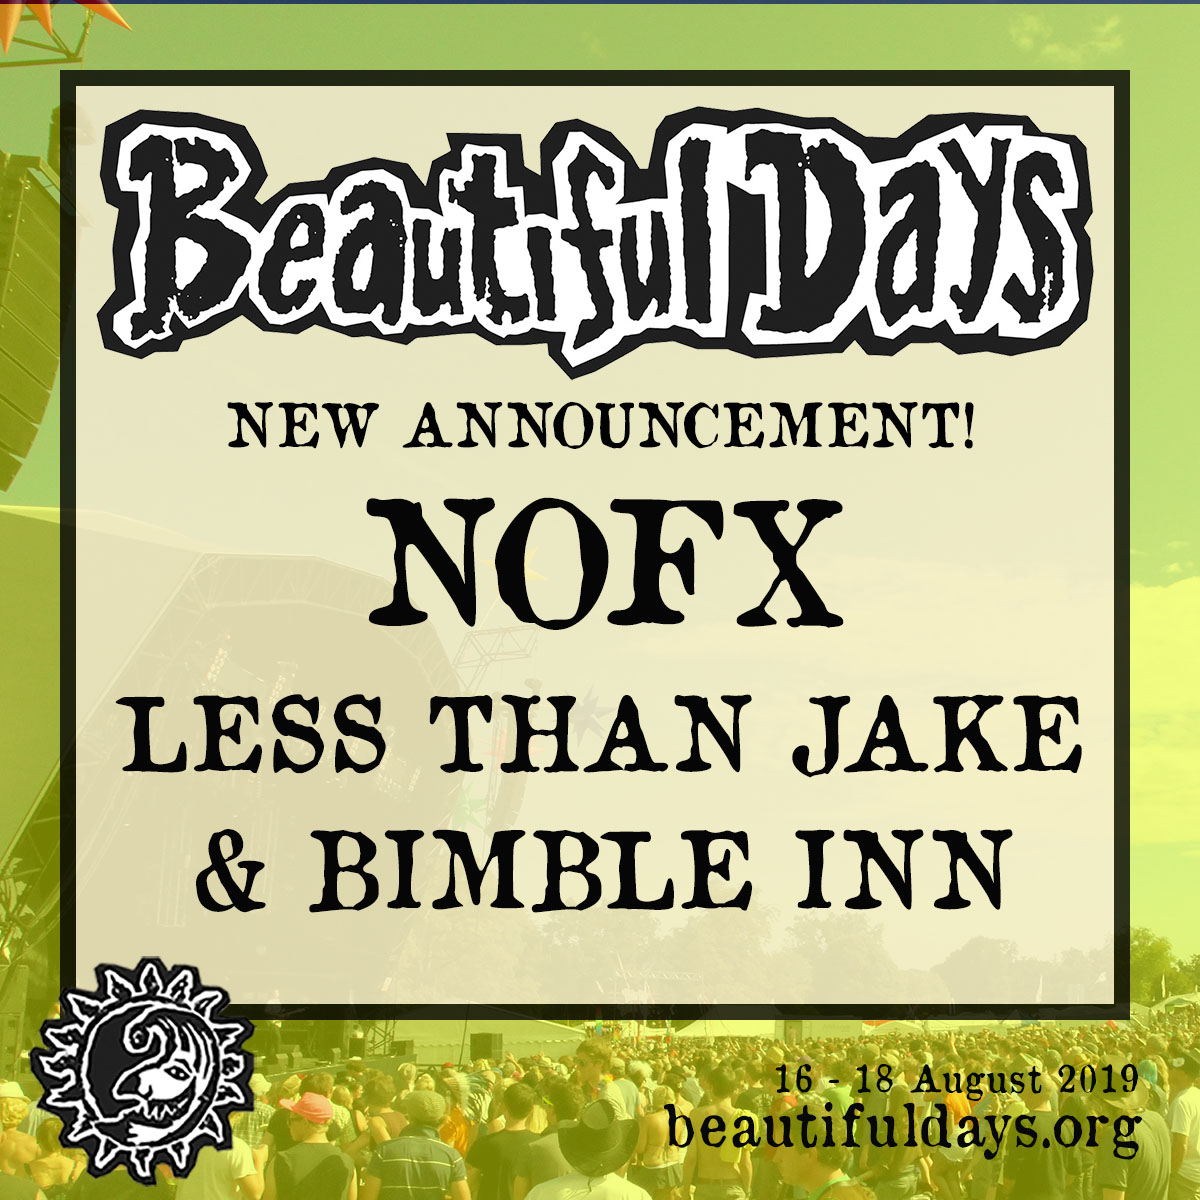 Special Guests & Bimble Inn